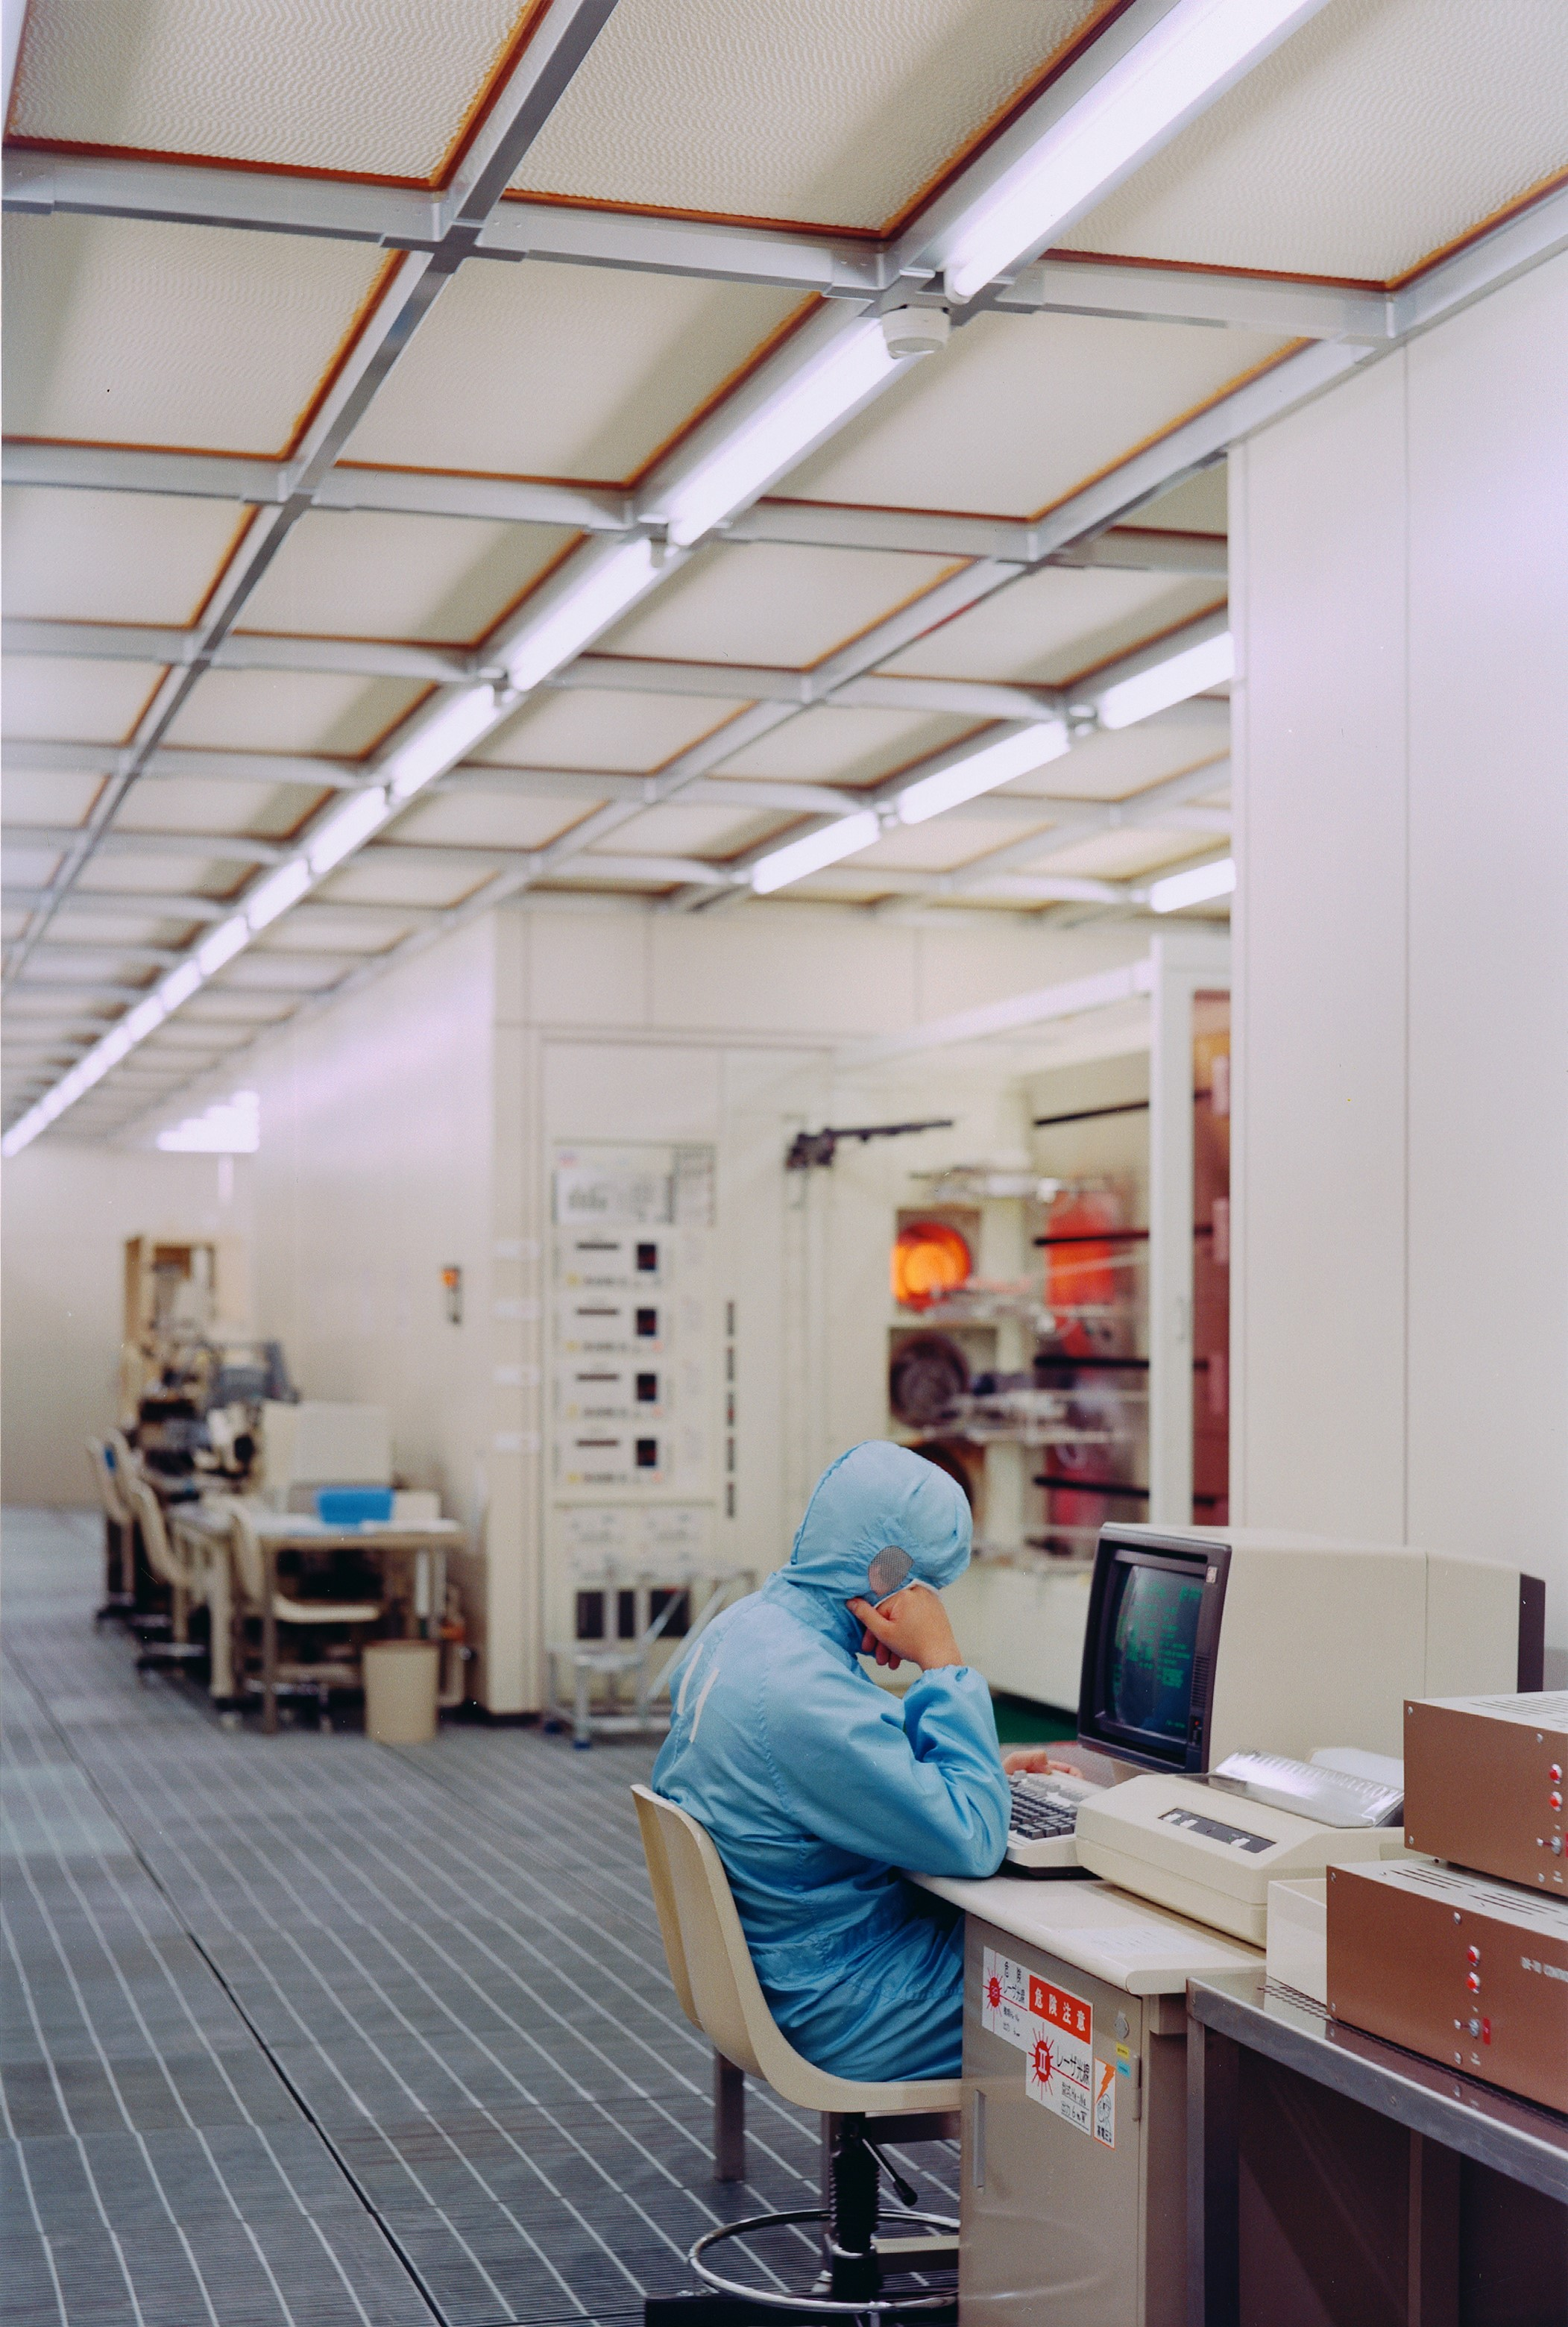 <p>Worker, Clean room, Toshiba, Kawasaki City (JP)</p>